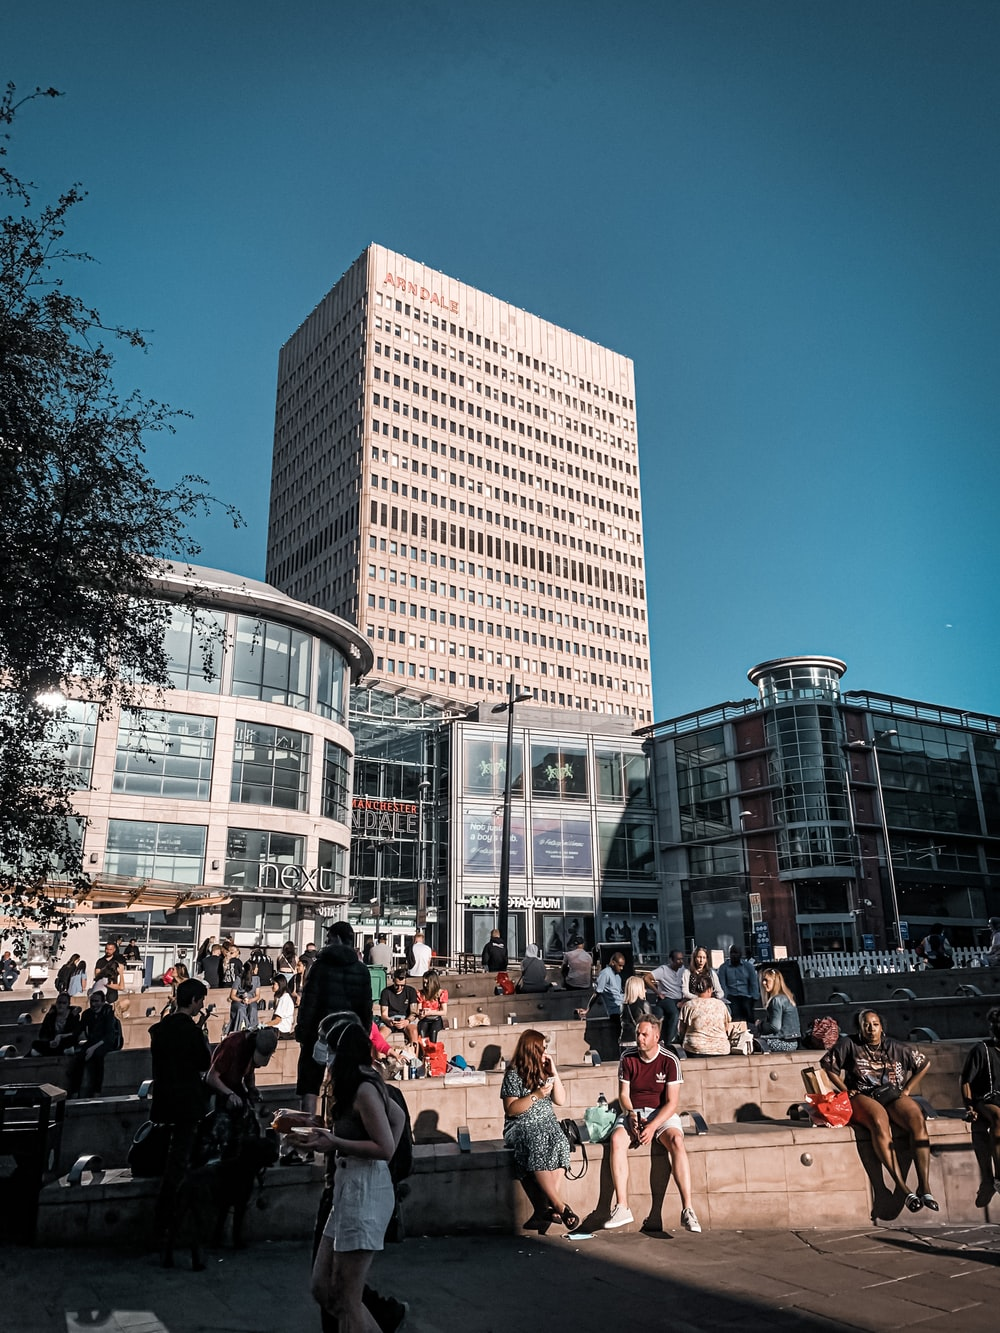 people sitting on bench near building during daytime